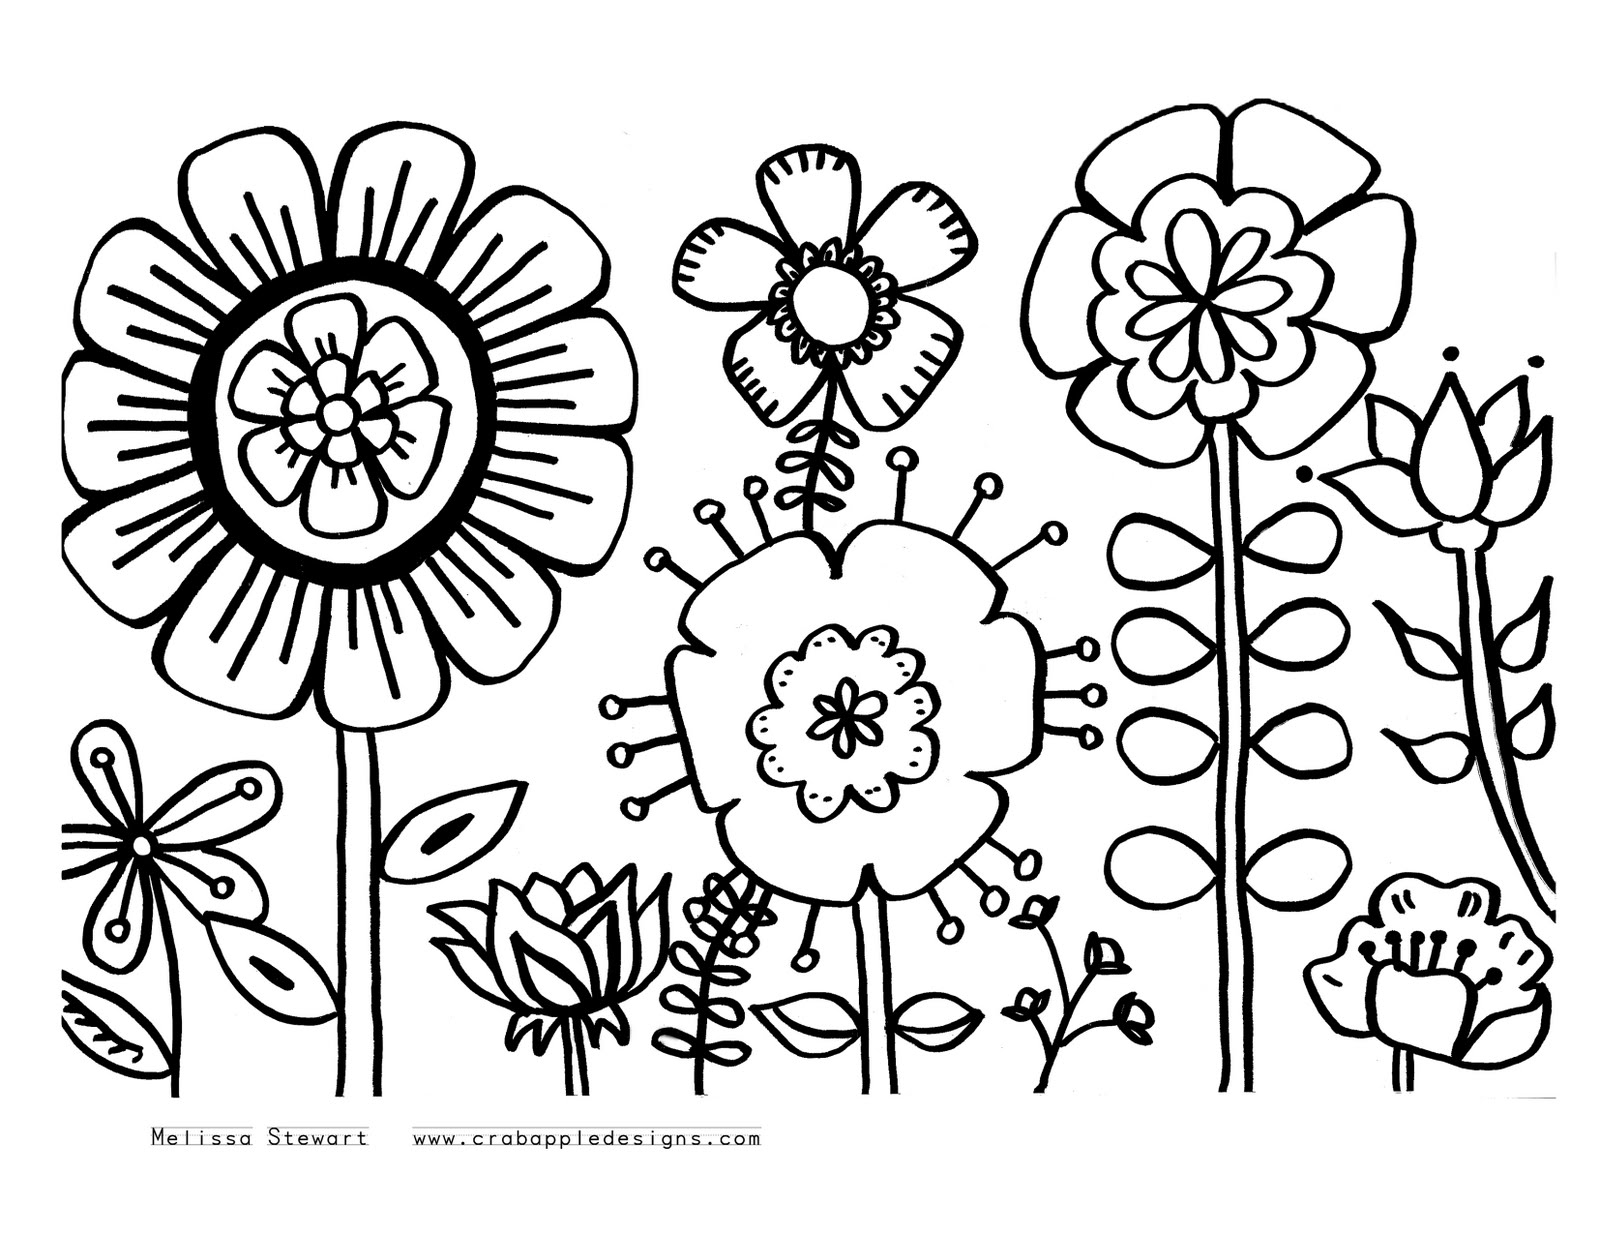 Floral Coloring Pages At Getdrawings Com Free For Personal Use